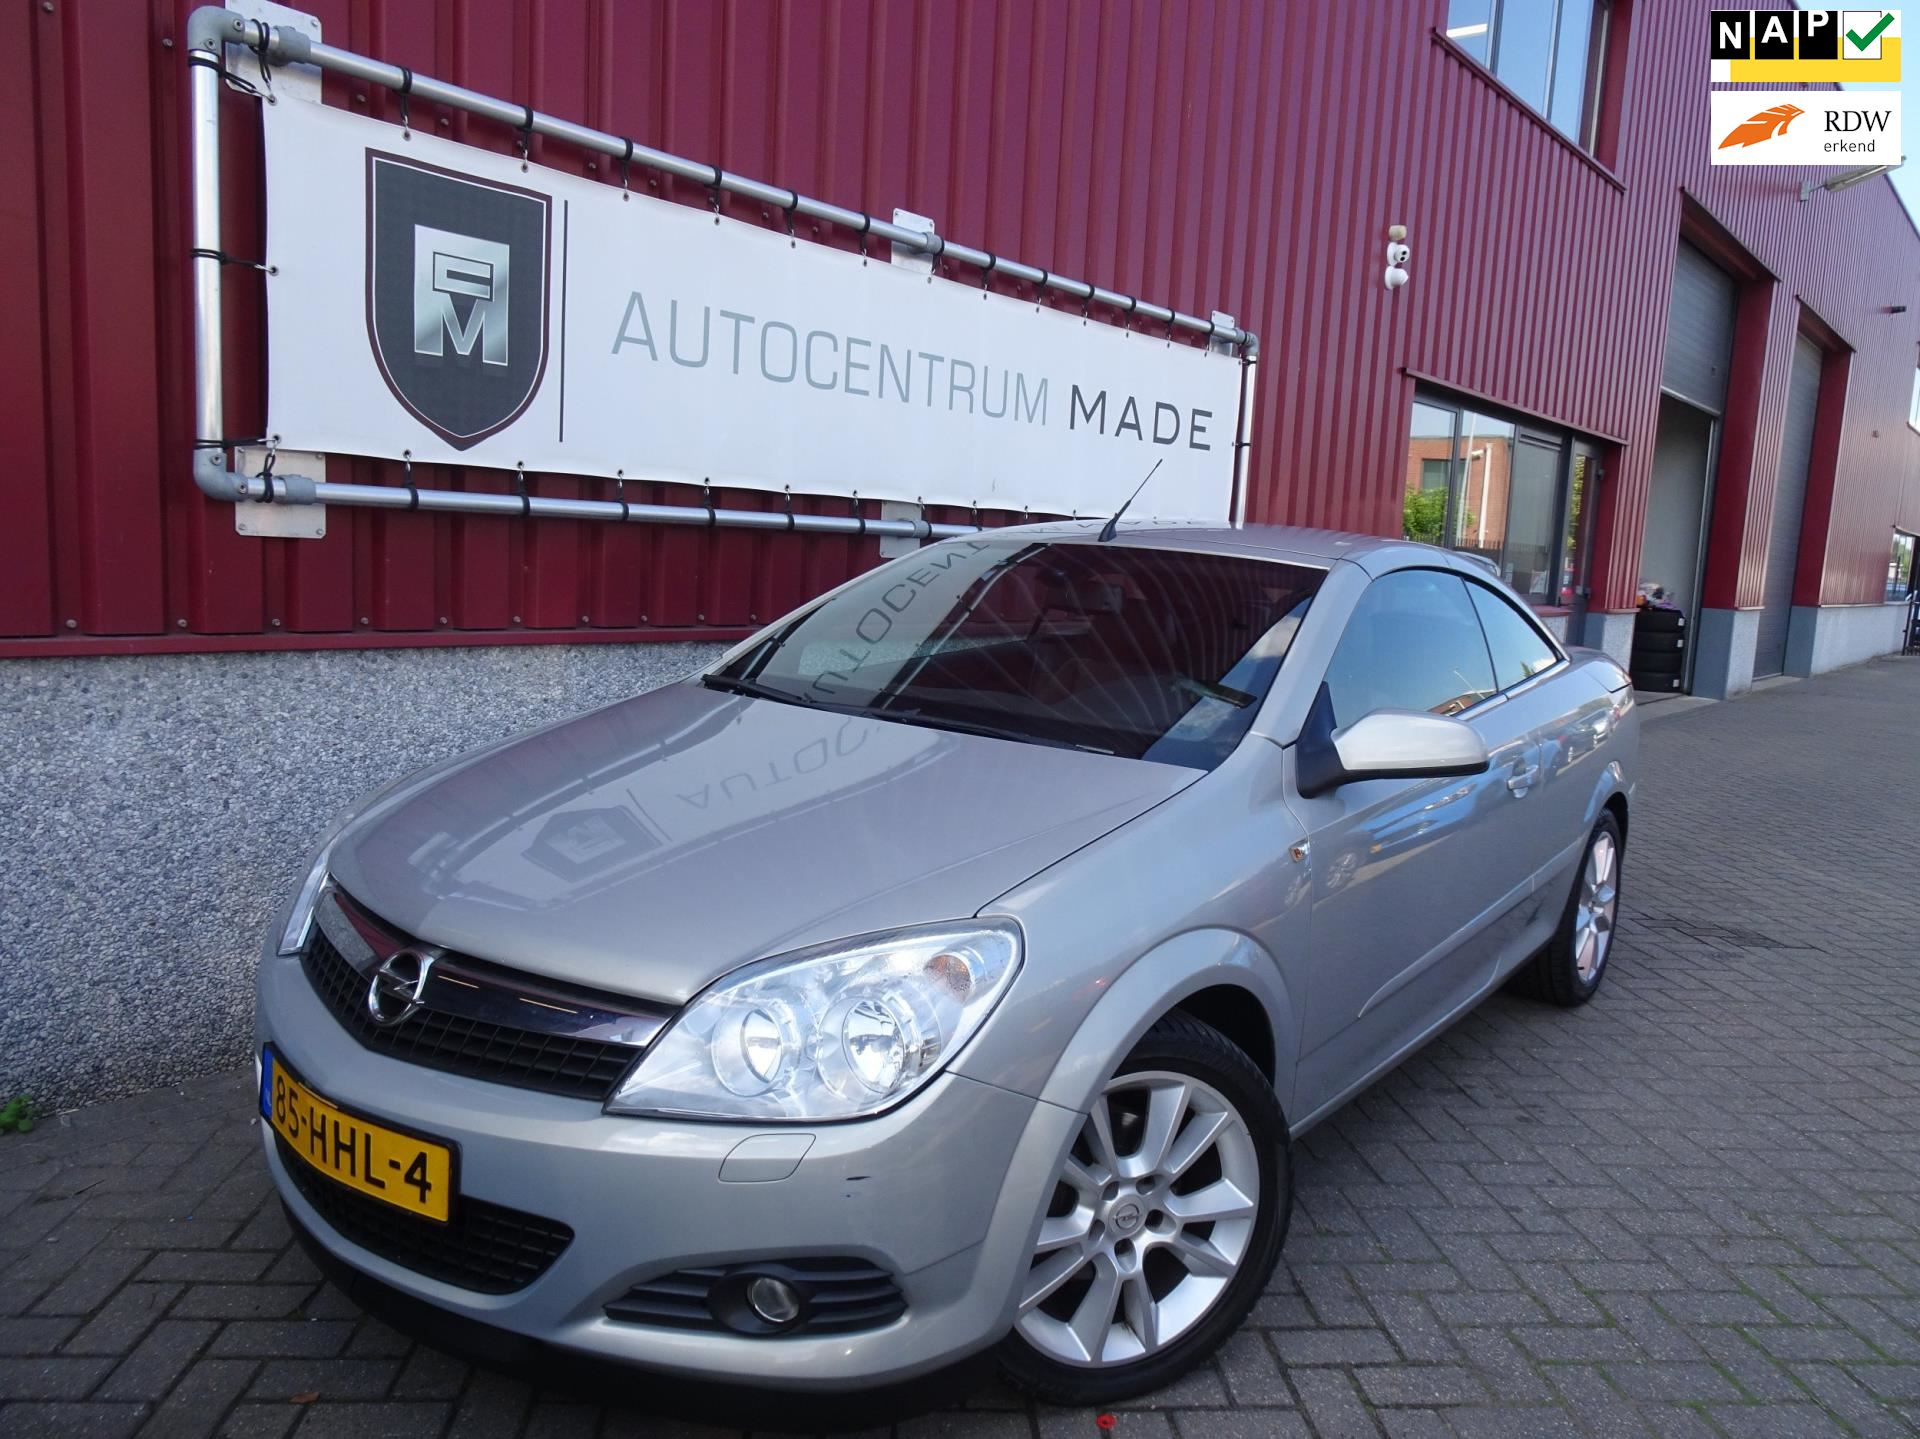 Opel Astra TwinTop occasion - Auto Centrum Made